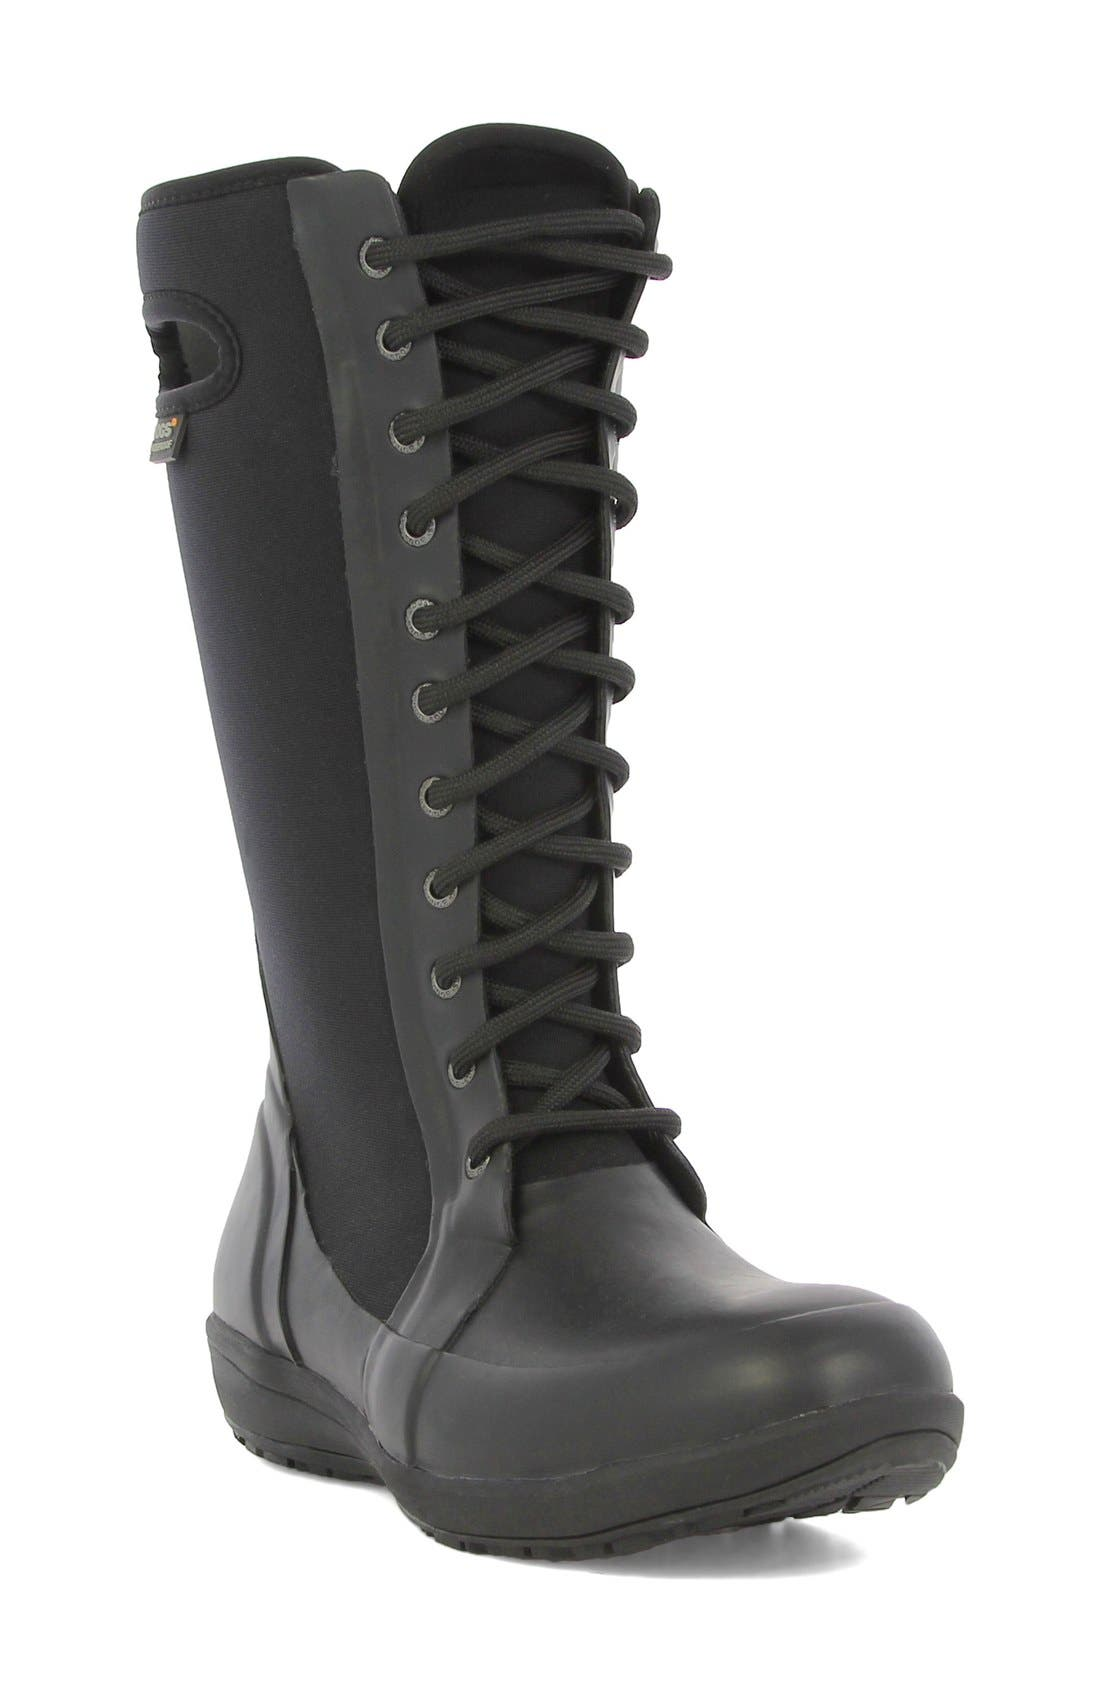 Bogs 'Cami' Knee High Waterproof Boot (Women)